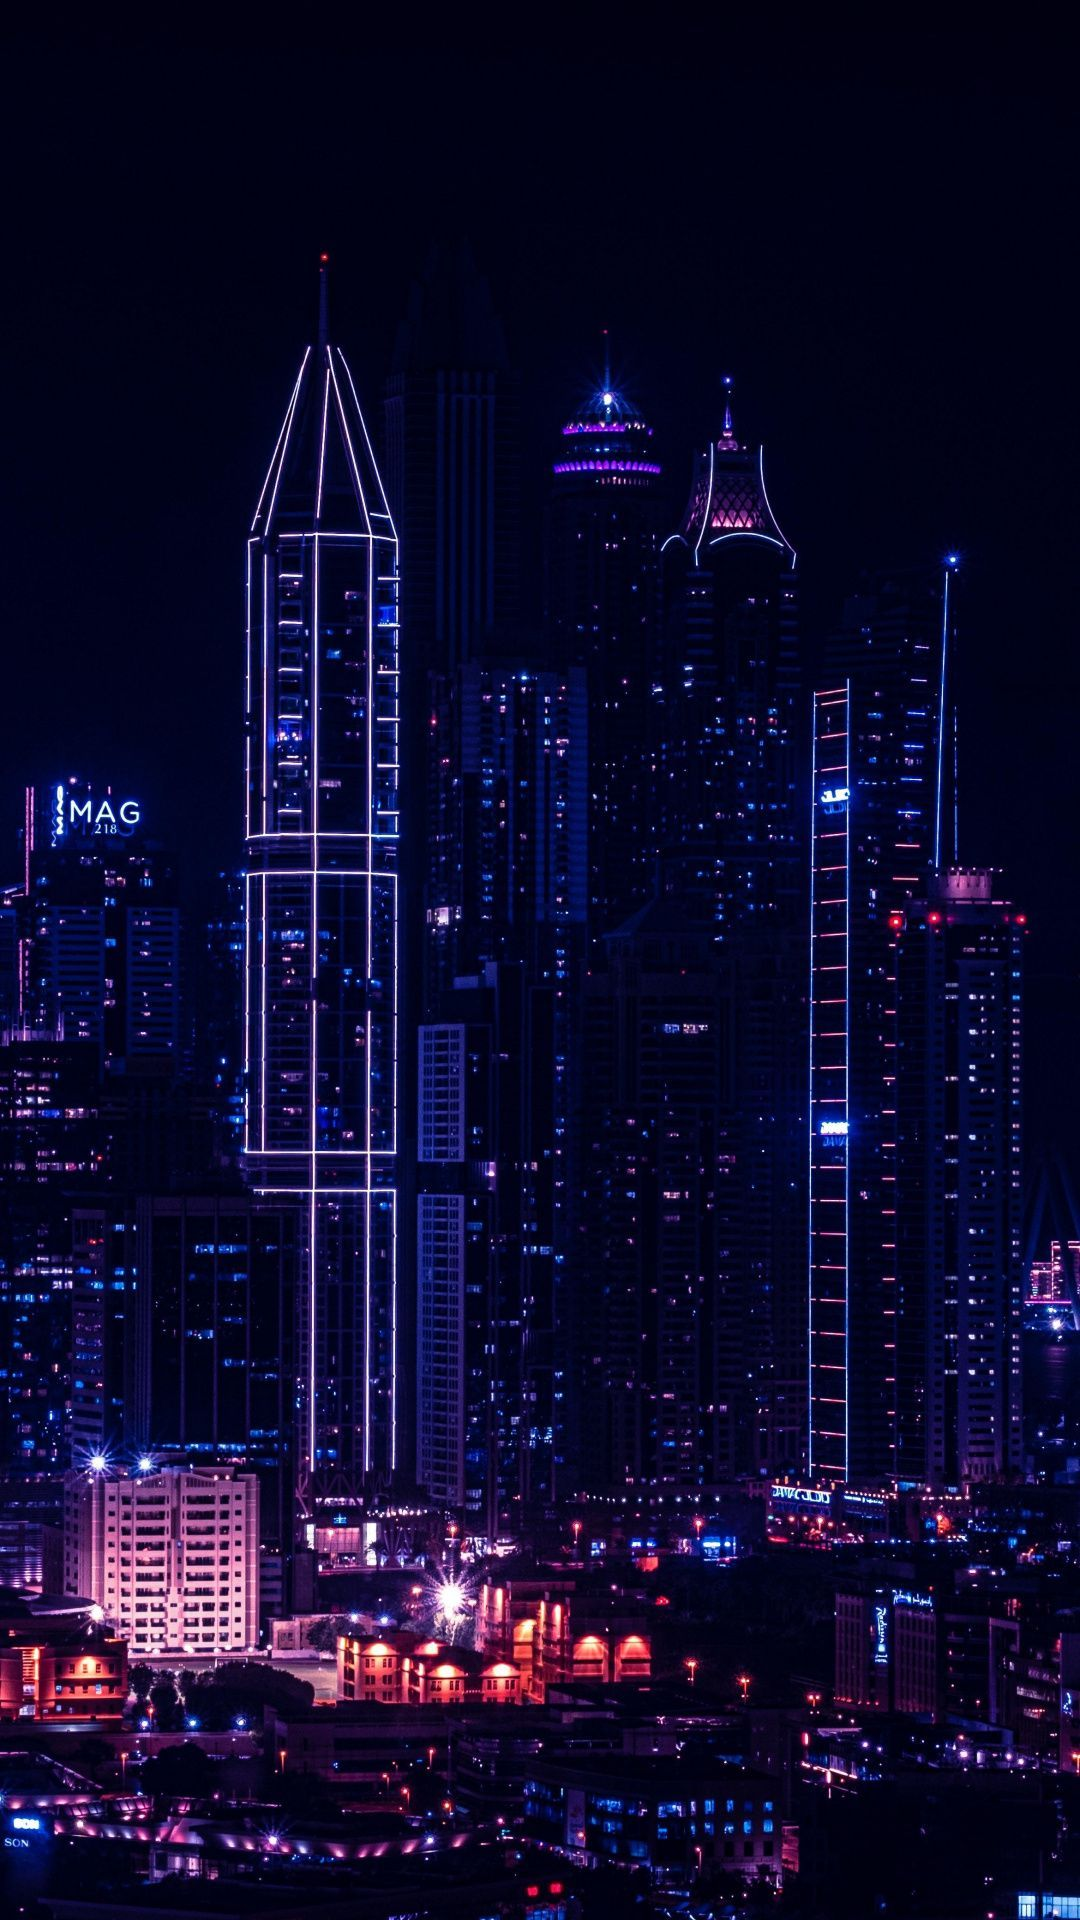 1080x1920 City, night, lights of buildings, cityscape wallpapers